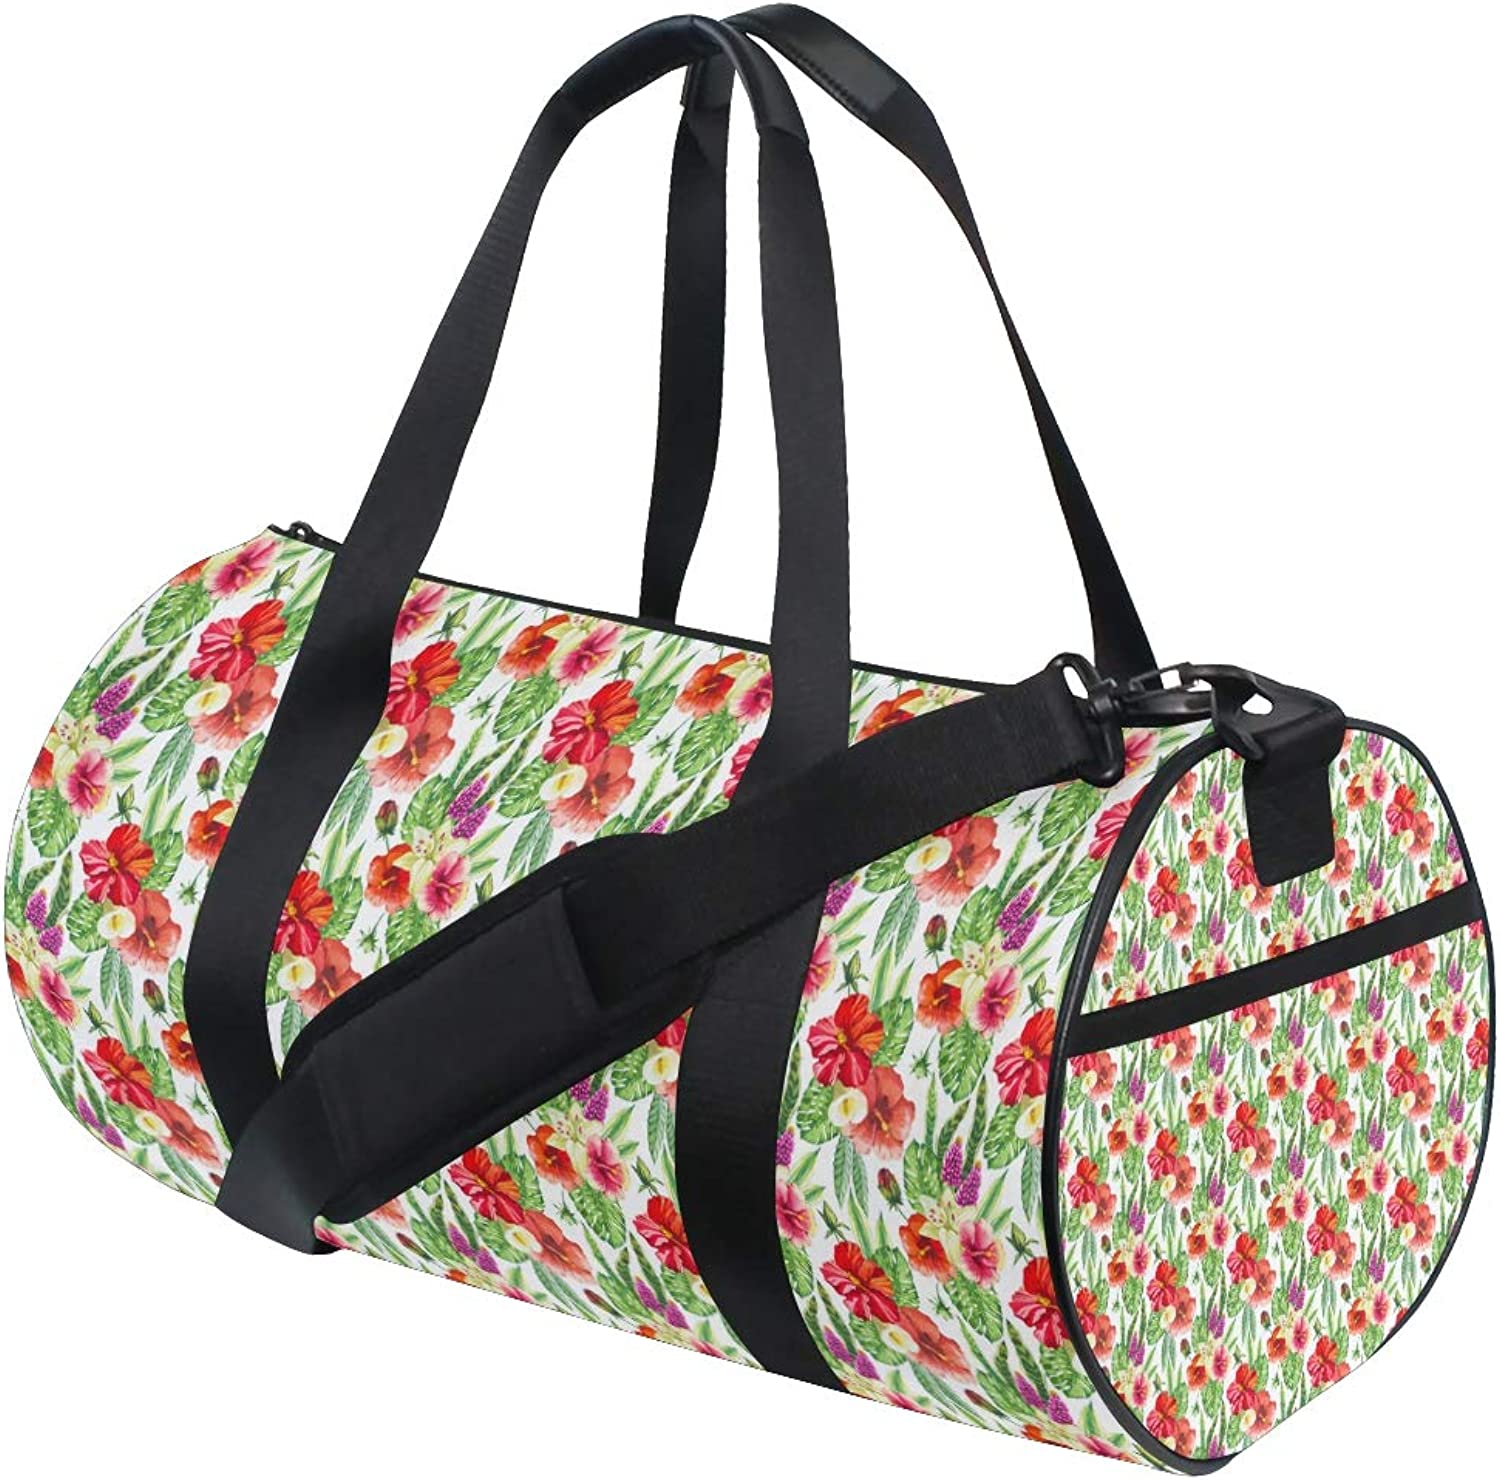 Russe Gym Bag Tropical Flower Red with shoes Compartment Waterproof Travel Duffel Bag for Women and Men